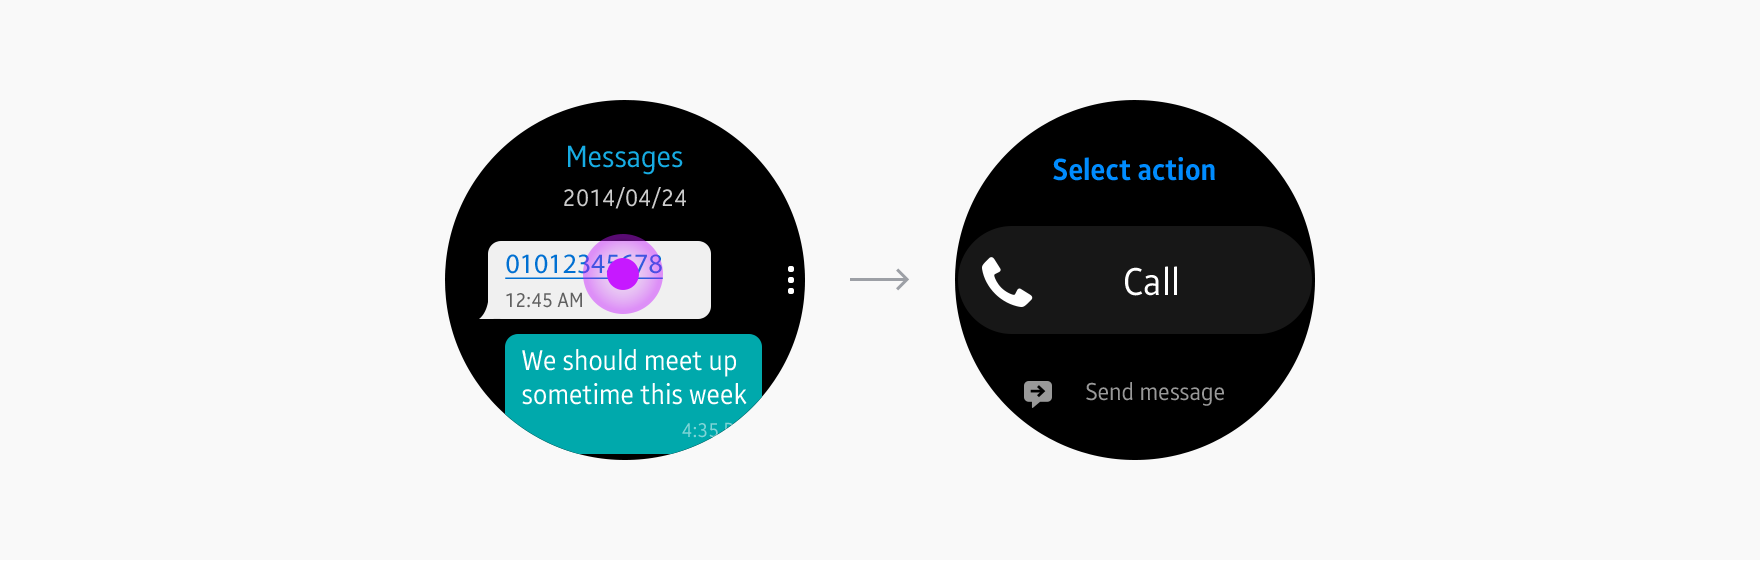 Users can choose if they want to call or message someone.